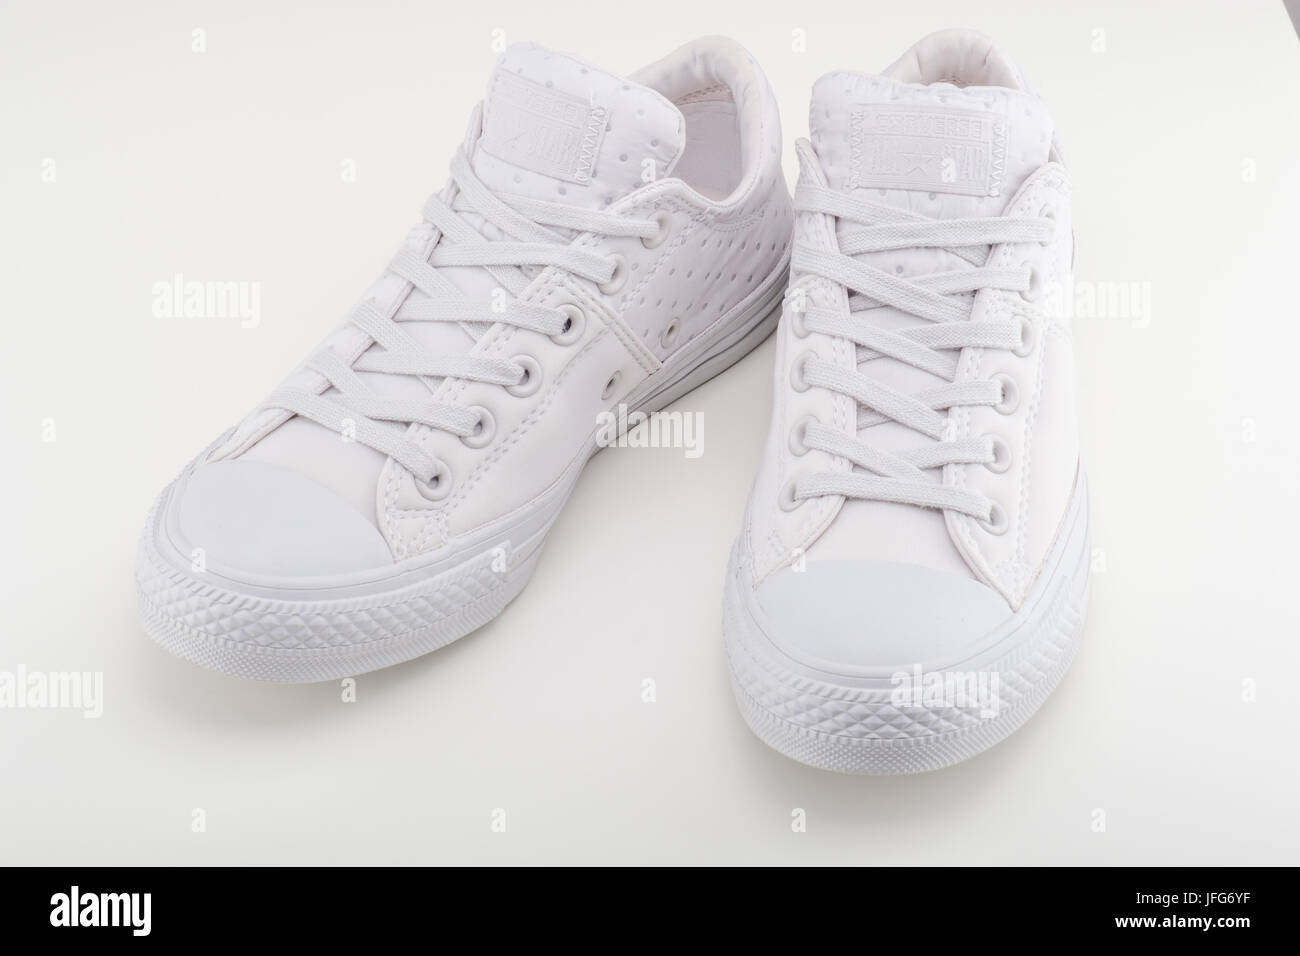 Pair Shoes White Stock Of All Star Chuck Taylor Converse Photo CBoxde